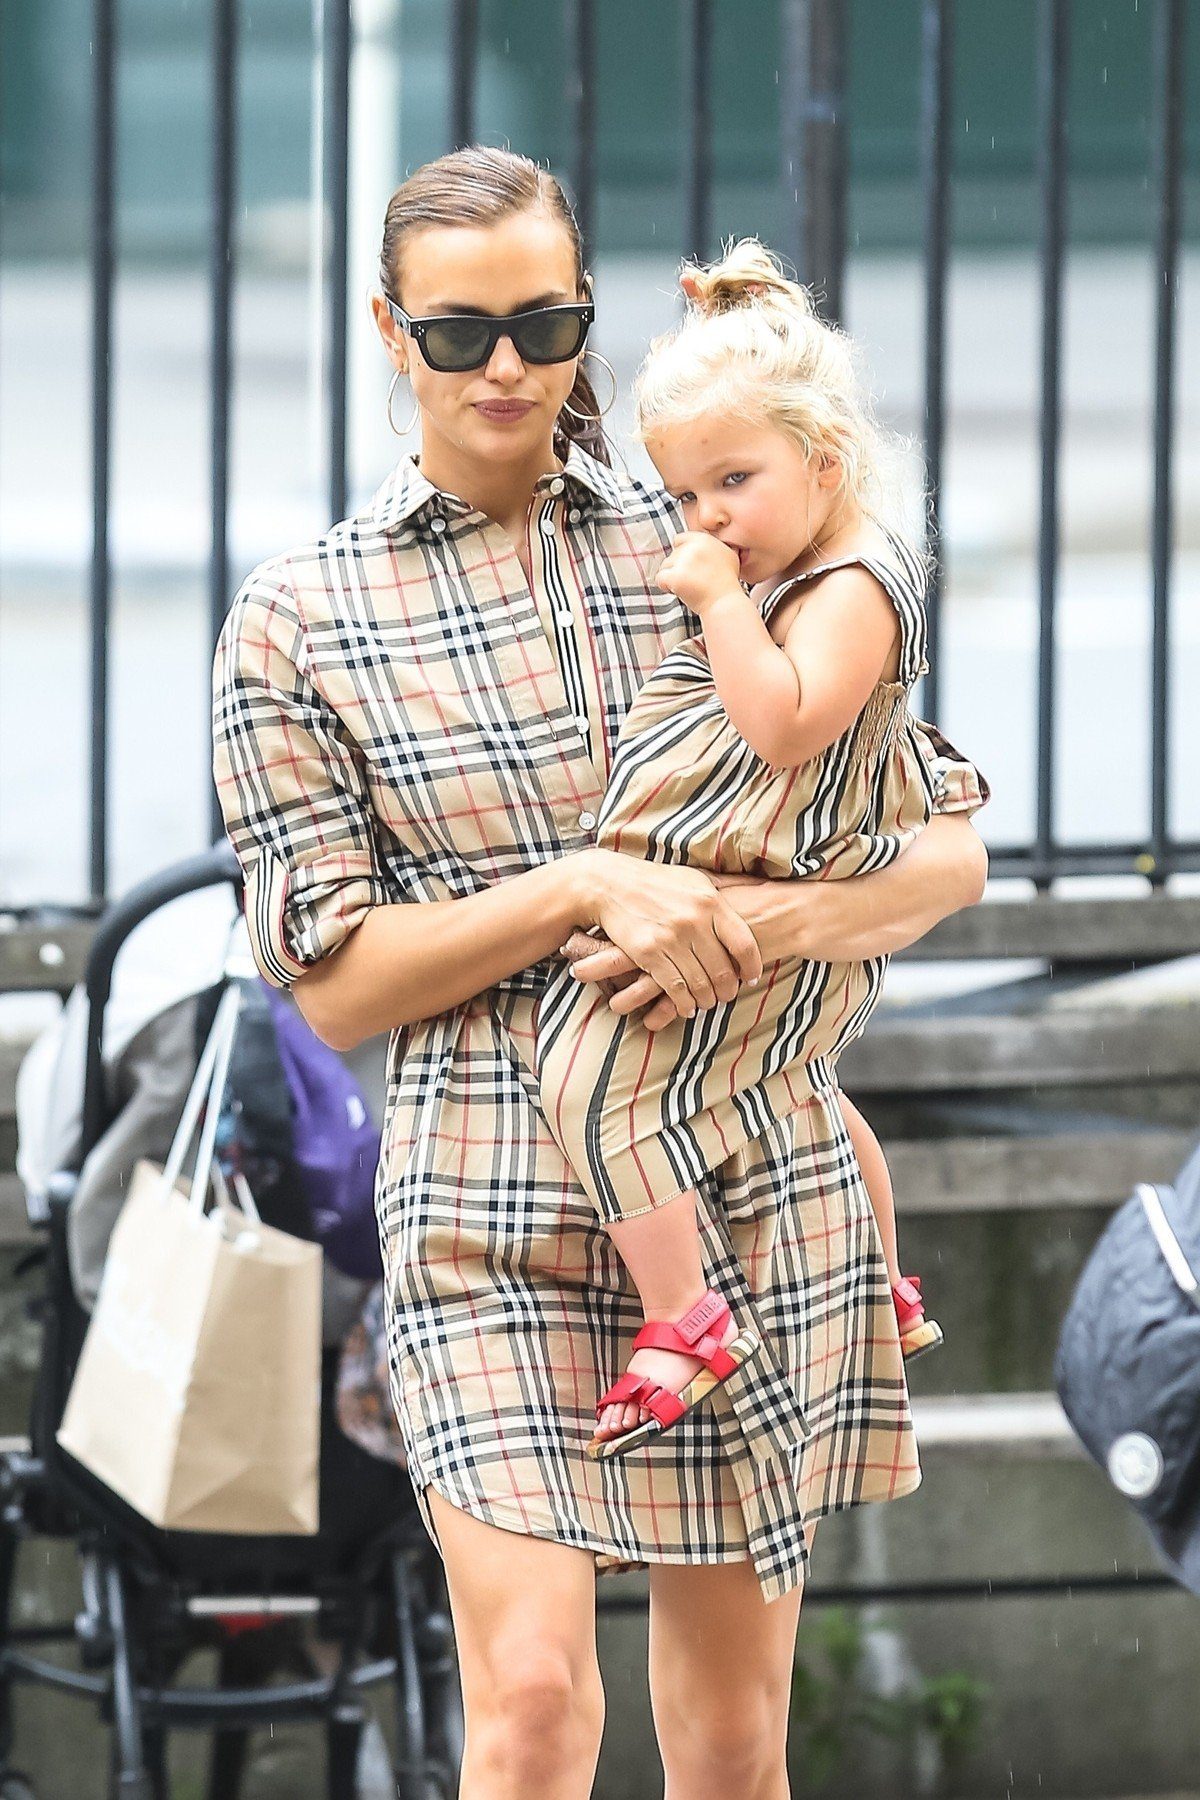 New York, NY  - Irina Shayk enjoys time with her daughter after breaking up with Bradley Cooper. The duo are seen enjoying their day at the park together.  *UK Clients - Pictures Containing Children Please Pixelate Face Prior To Publication*, Image: 448732309, License: Rights-managed, Restrictions: , Model Release: no, Credit line: Profimedia, Backgrid USA